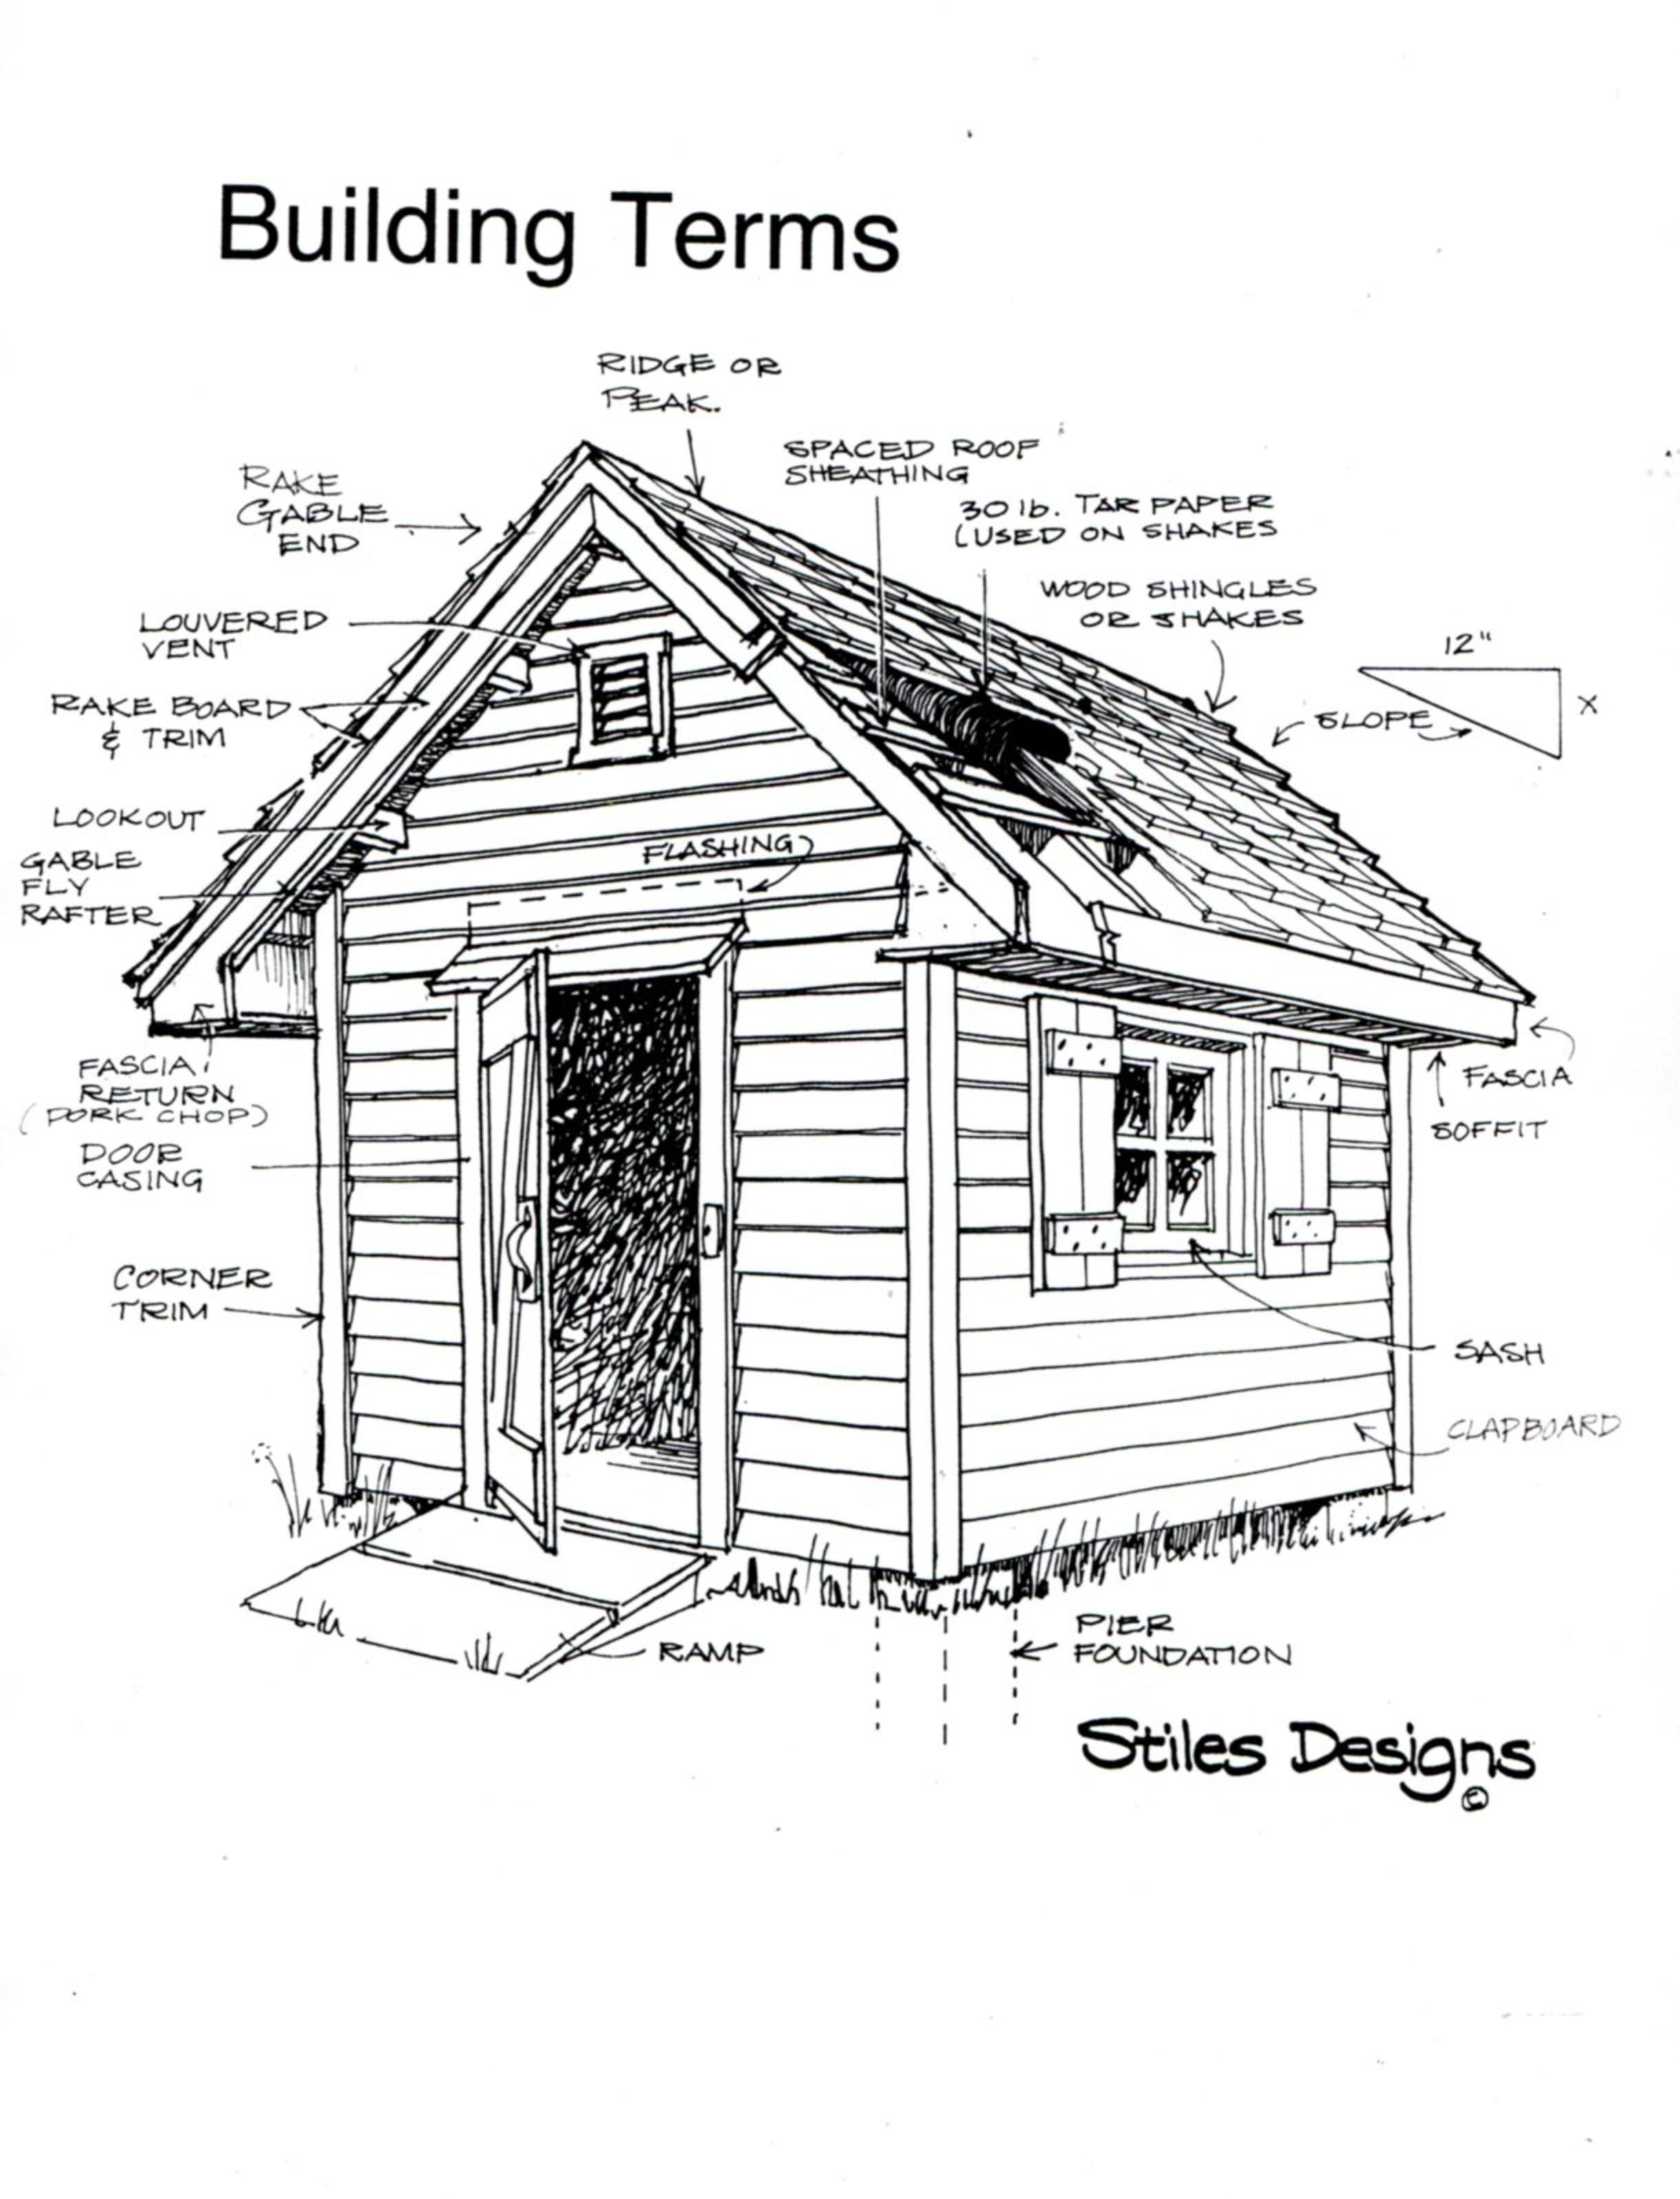 Downloadable Shed Plans The Tiny Eco House And Backyard Building Shed Blueprints Building A Shed Shed Plans